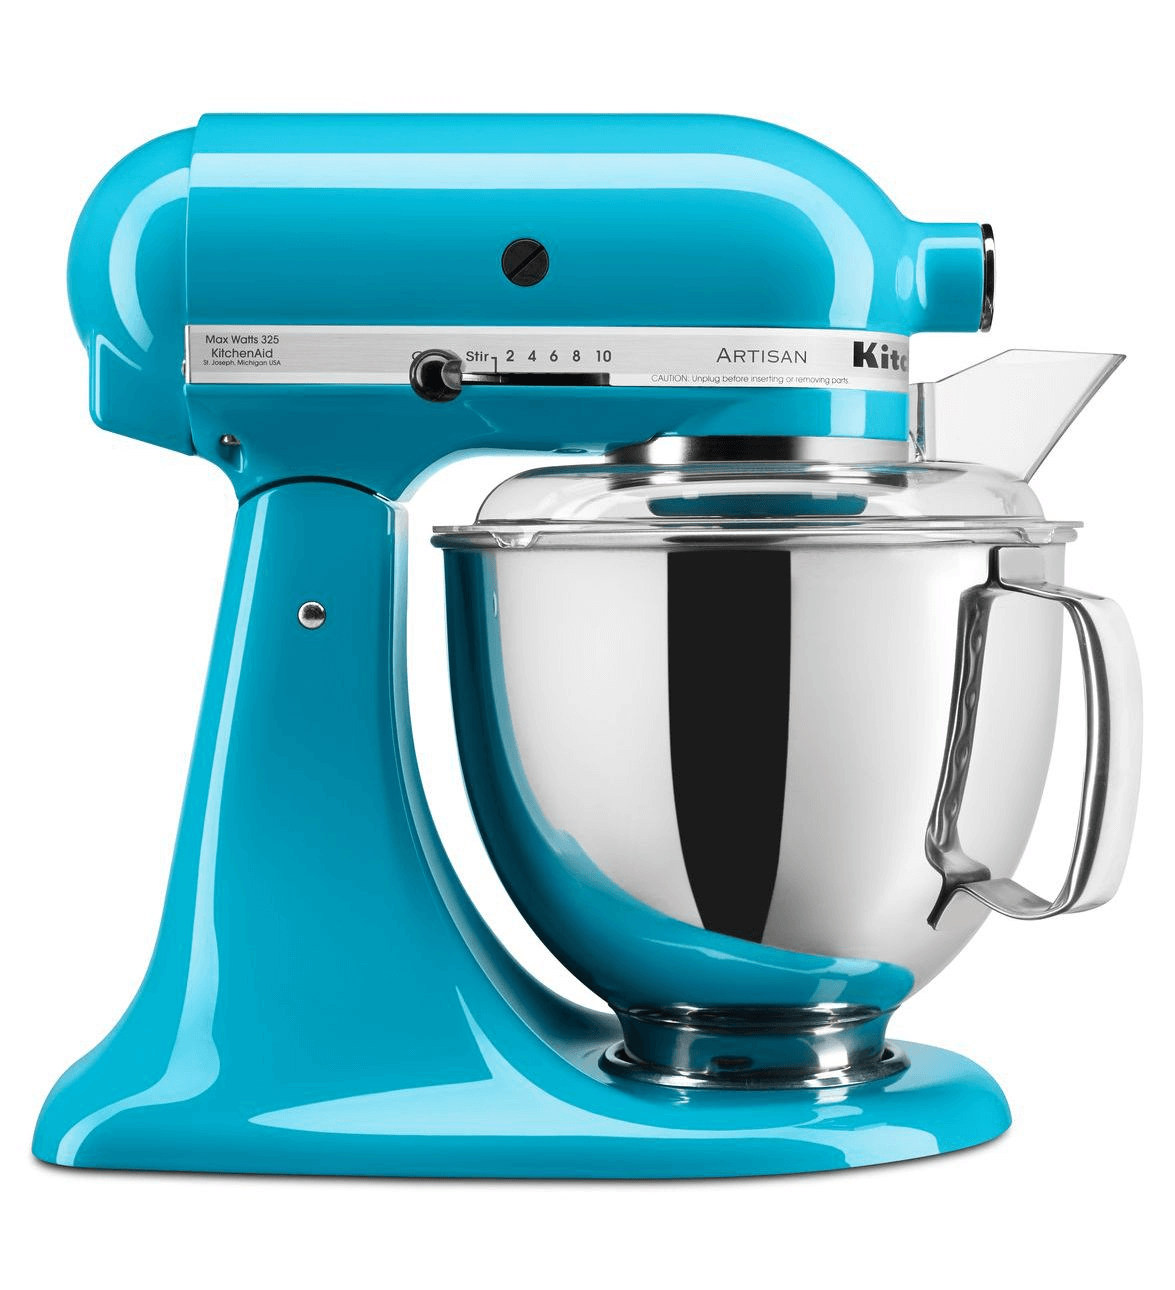 Kitchenaid mixer blue